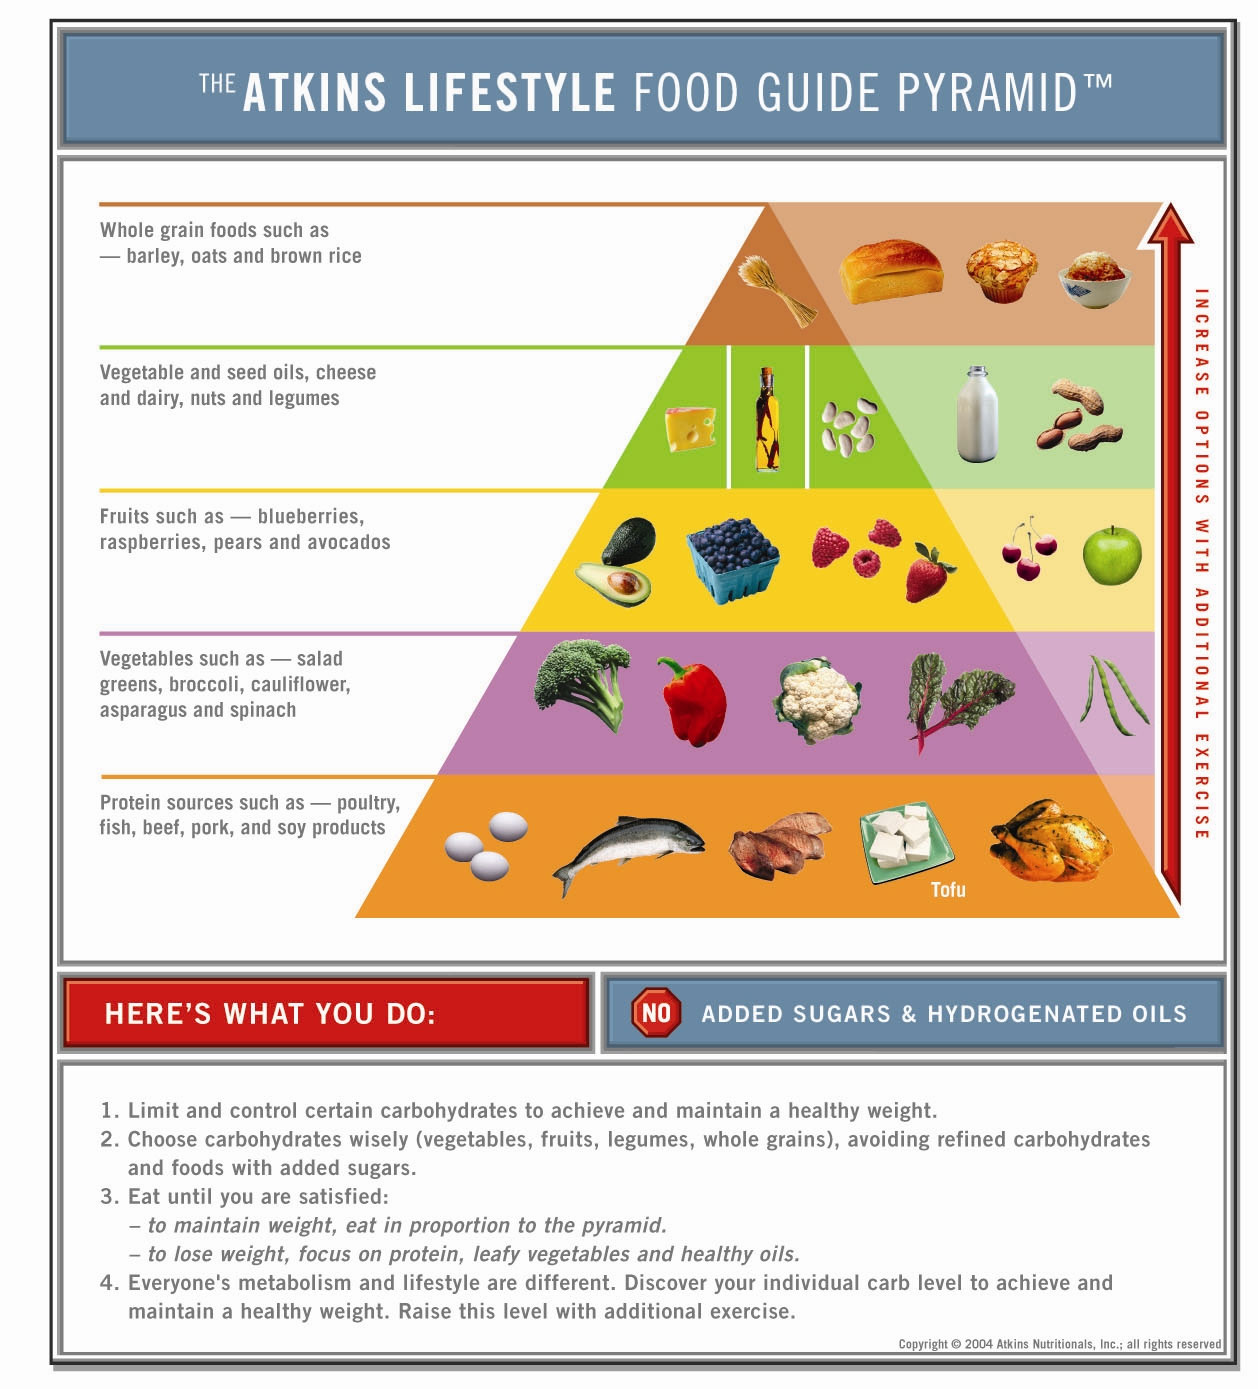 Atkins Lifestyle Food Guide Pyramid